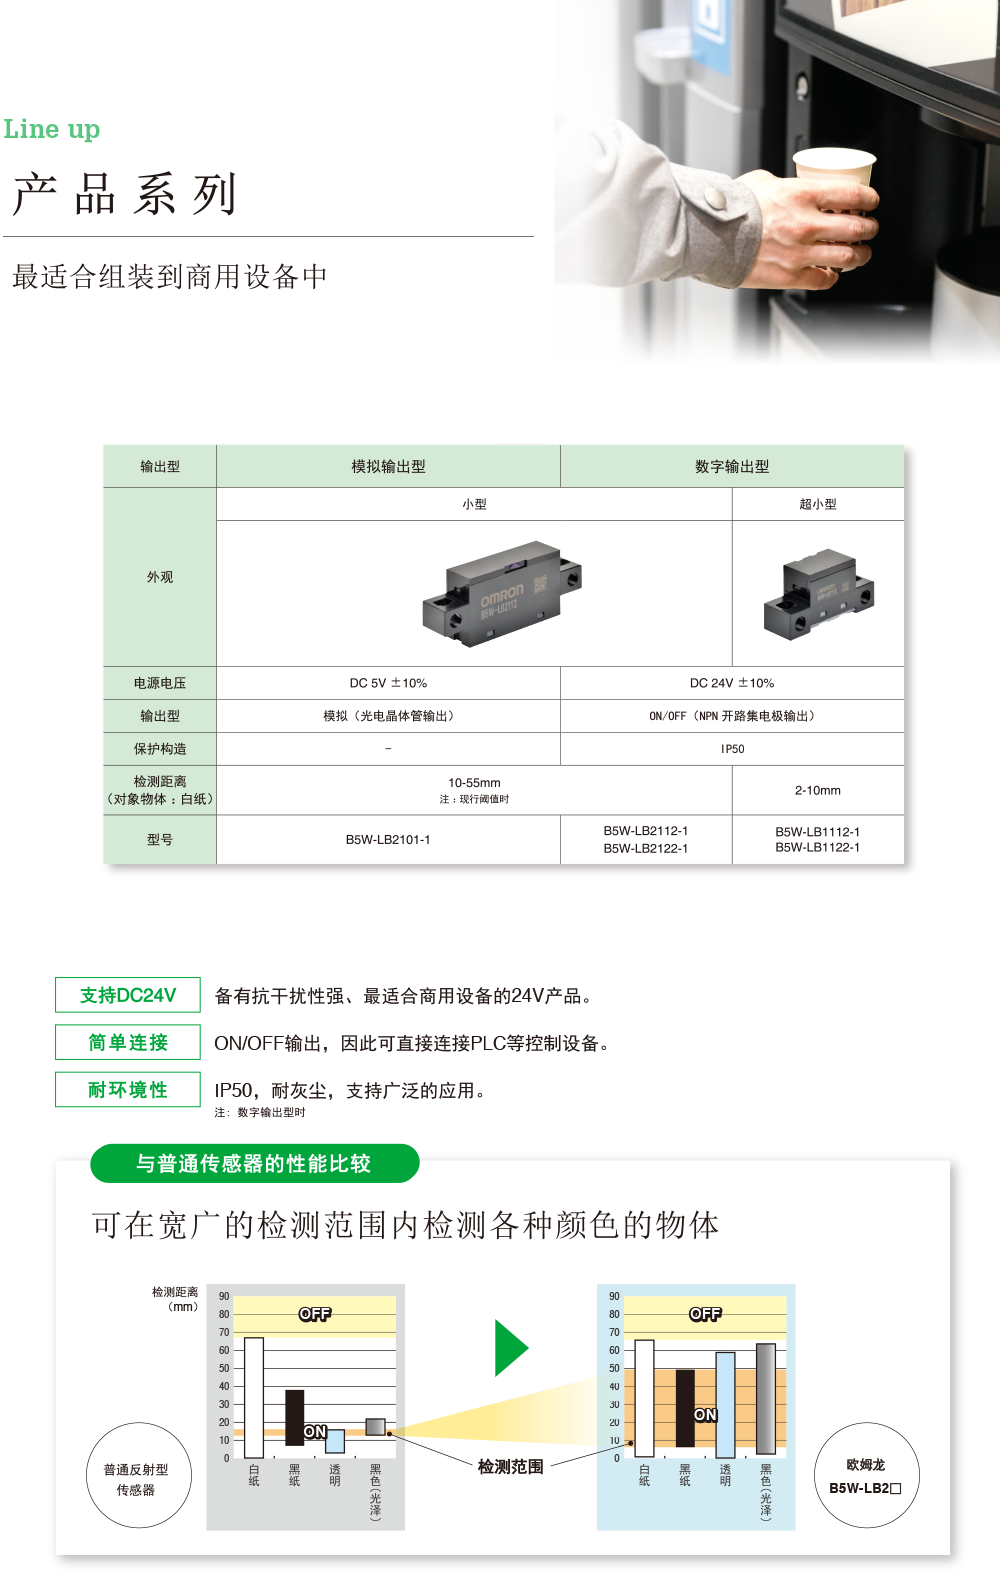 [Line up]Suitable for embedding in commercial equipment 输出型 模拟输出型 数字输出型 外观 小型 超小型 电源电压 DC 5V ±10% DC 24V ±10% 输出型 模拟(光电晶体管输出) ON/OFF(NPN 开路集电极输出) 保护构造 - IP50 检测距离(对象物体 :白纸) 10-55mm 注 :现行阈值时 2-10mm 型号 B5W-LB2101-1 B5W-LB2112-1 B5W-LB2122-1 B5W-LB1112-1 B5W-LB1122-1[24 VDC]Noise-resistant, 24 V types ideal for use in commercial equipment are also available in our lineup.[Connects easily]An ON/OFF output that enables direct connections to control equipment such as PLCs.[Environmental resistance]IP50 for use in a wide range of applications, including heavy dust. Note: Only digital output type[Performance comparison with conventional sensors]Capable of sensing workpieces of various colors over a wide sensing range